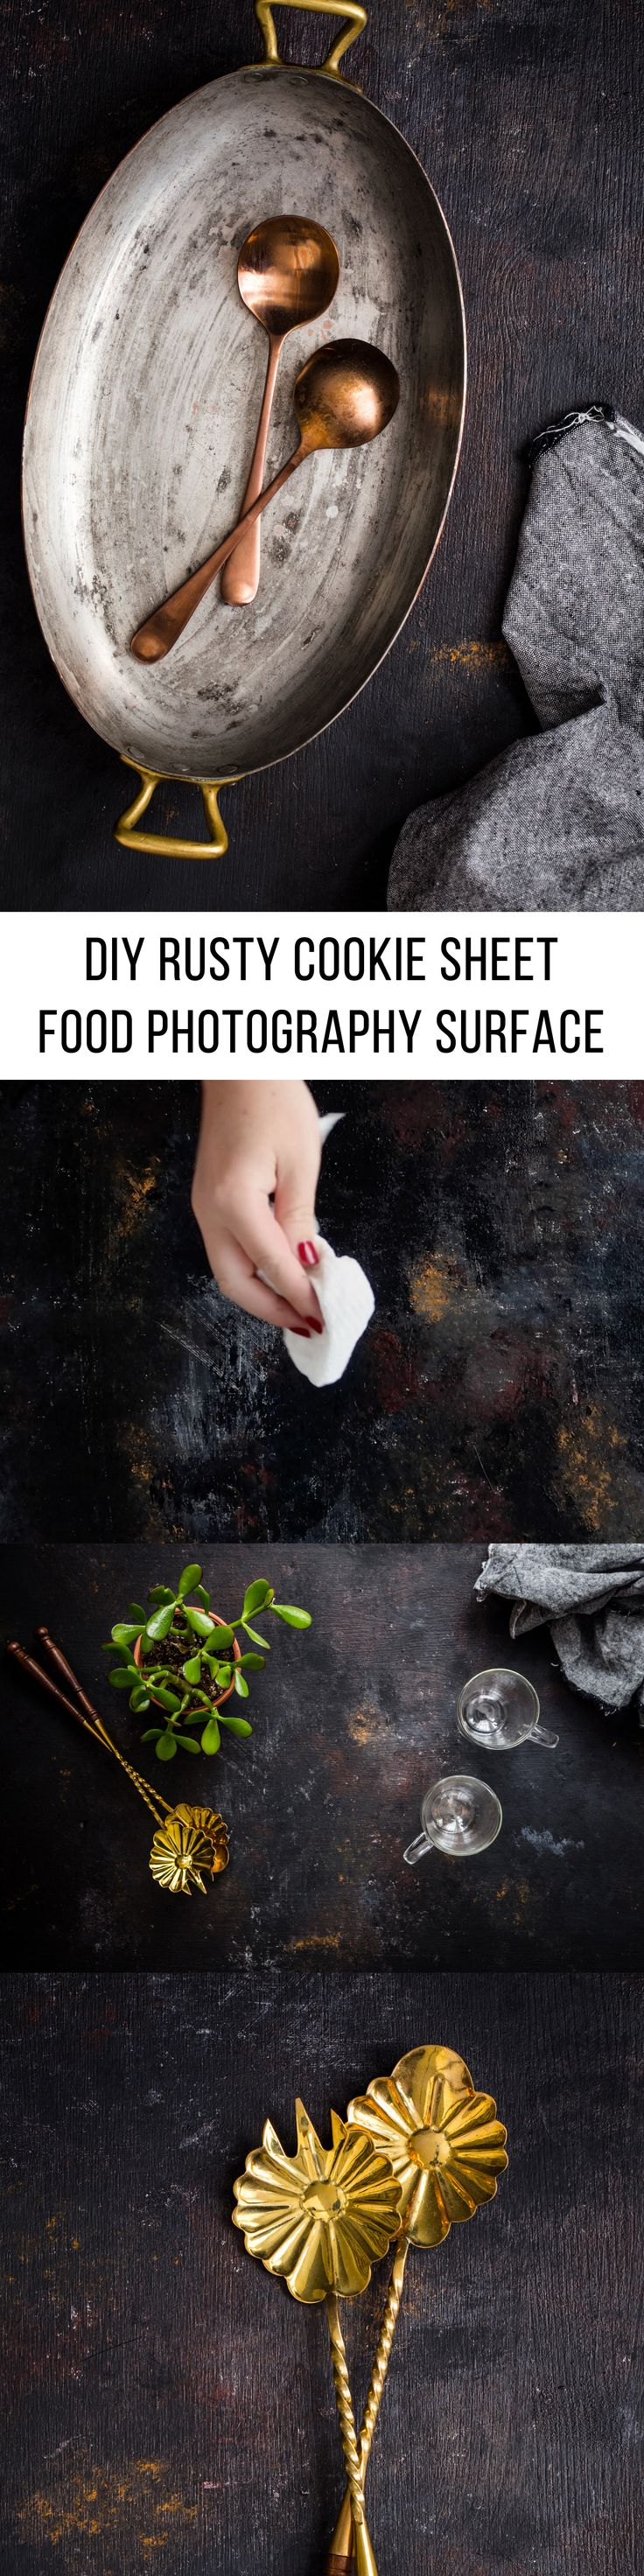 How To Video: DIY Rusty Cookie Sheet Surface for Moody Food Photography